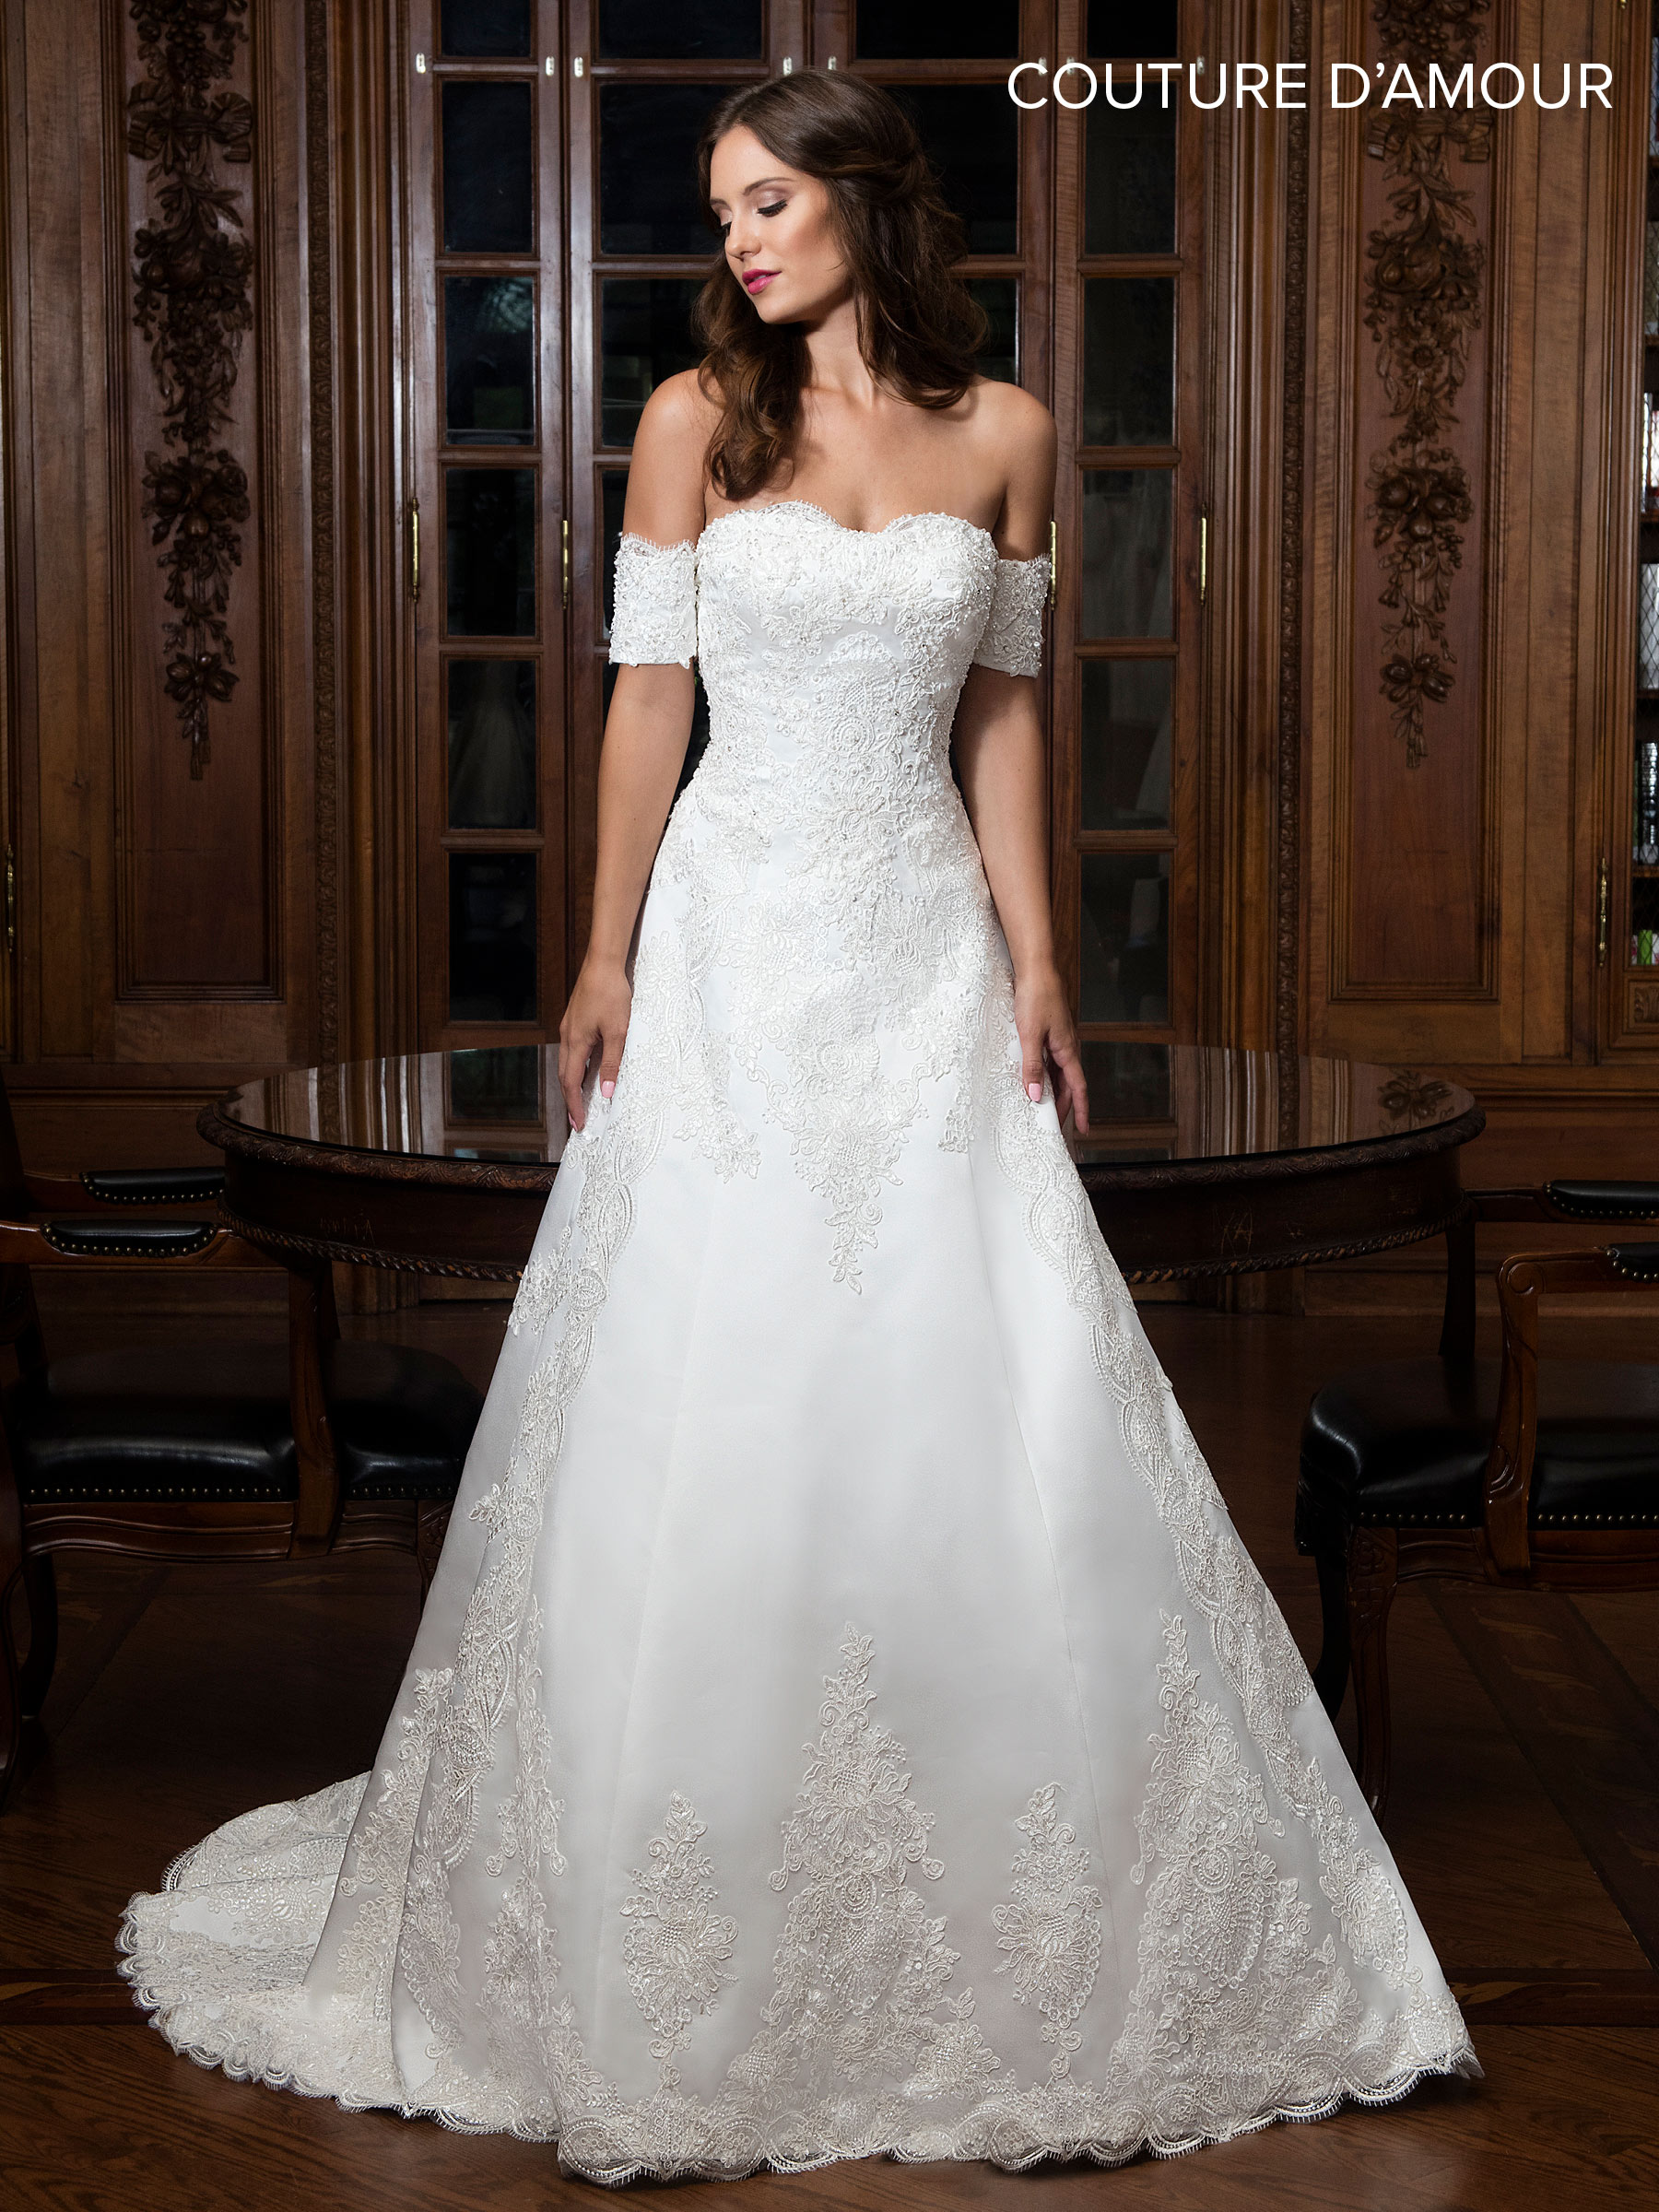 Couture Damour Bridal Dresses | Couture d'Amour | Style - MB4012